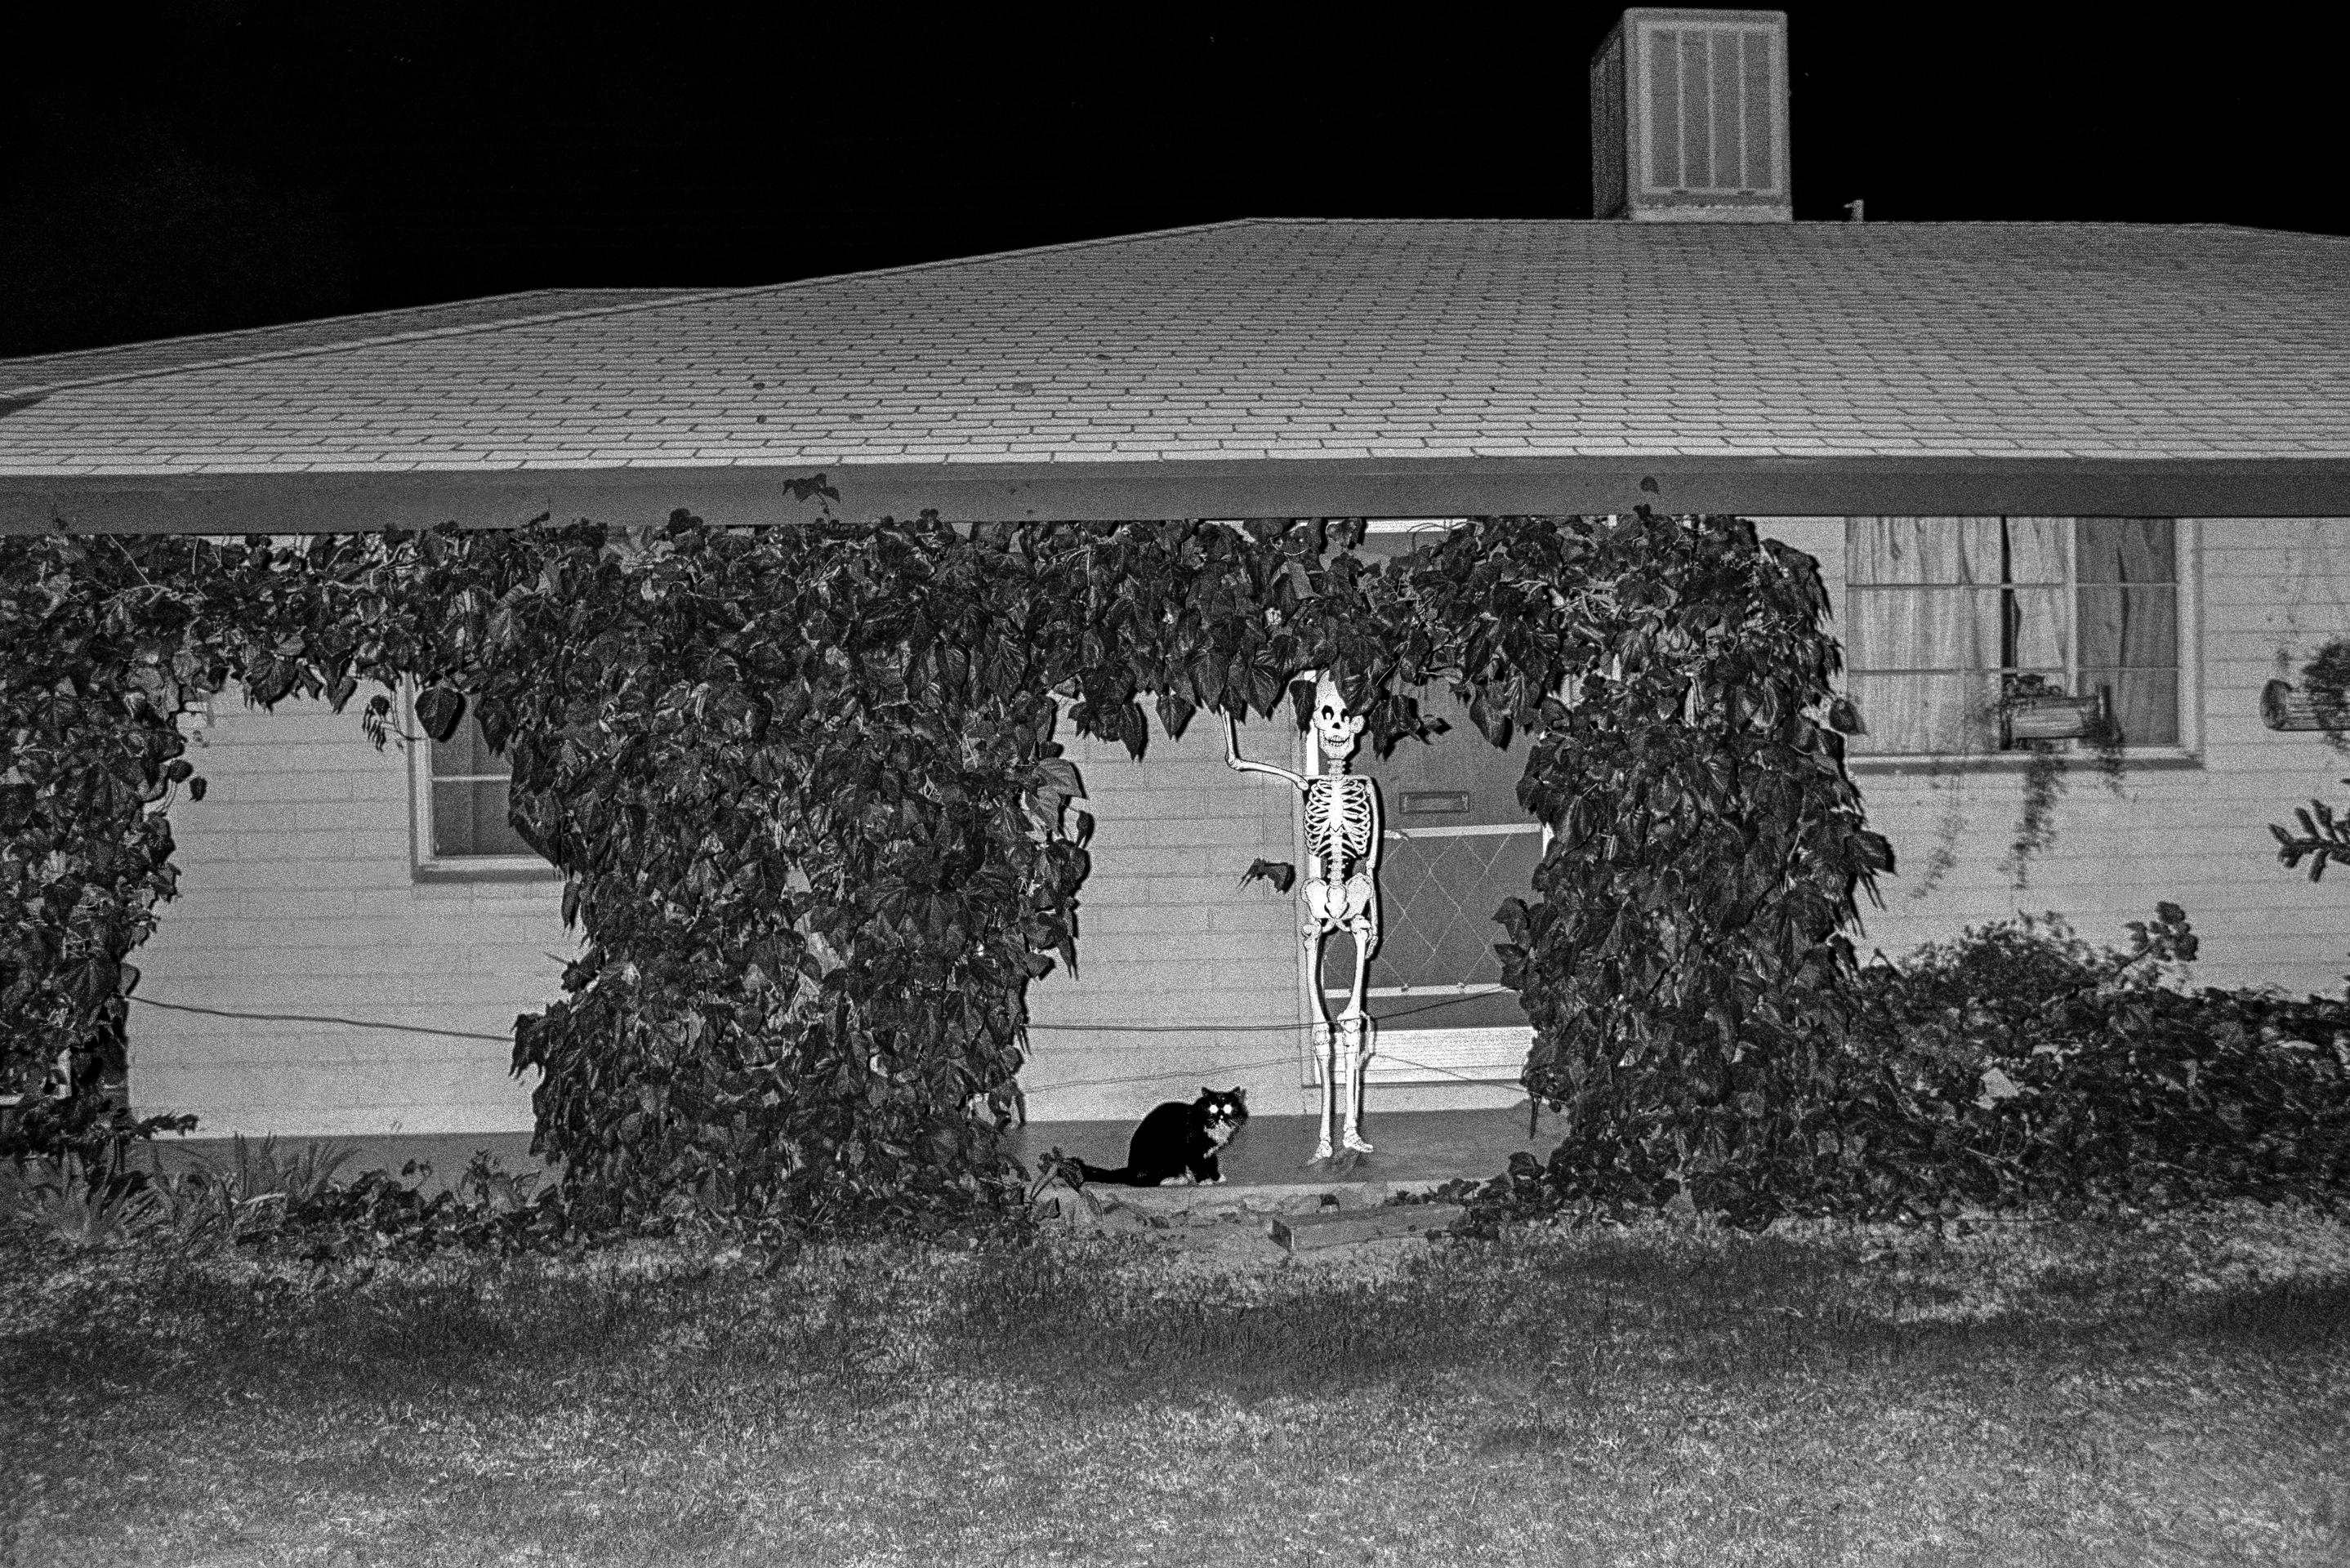 Open the image &lsquoUSA. ARIZONA. Tempe. Surreal pair guard a house during Halloween in Tempe, Arizona. 1979.'